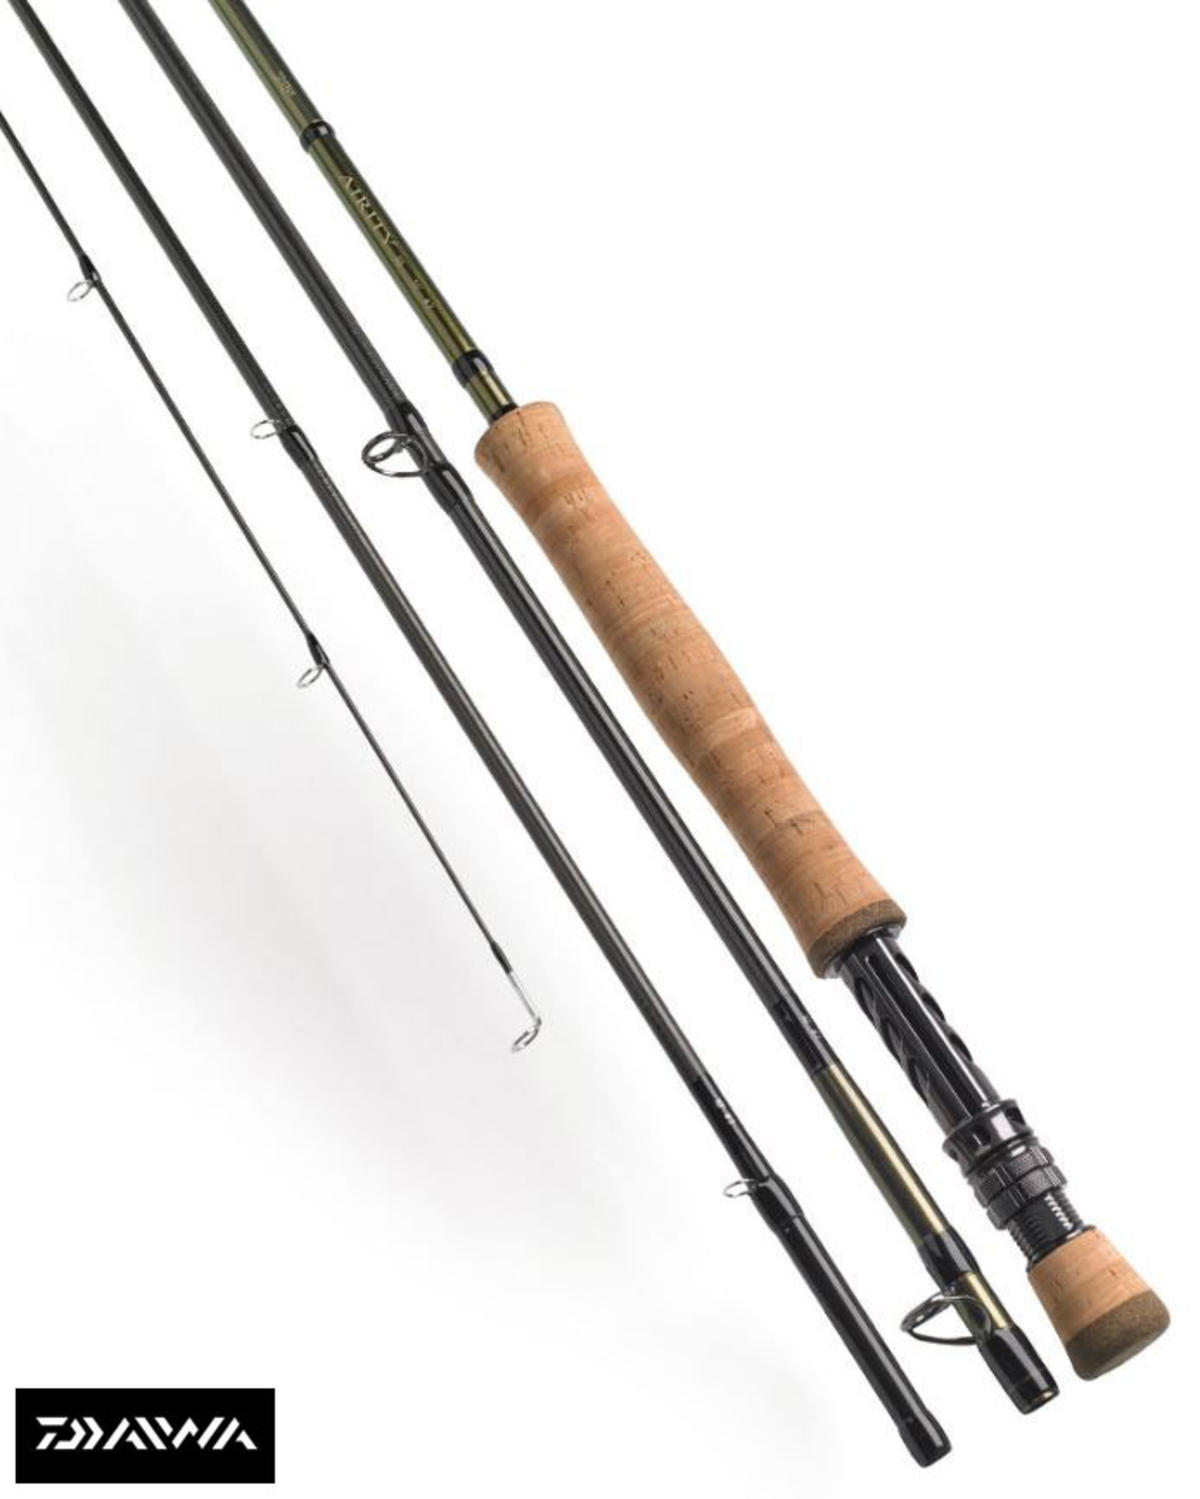 New Daiwa Airity X45 Trout Fly Fishing Rods - All Models / Sizes